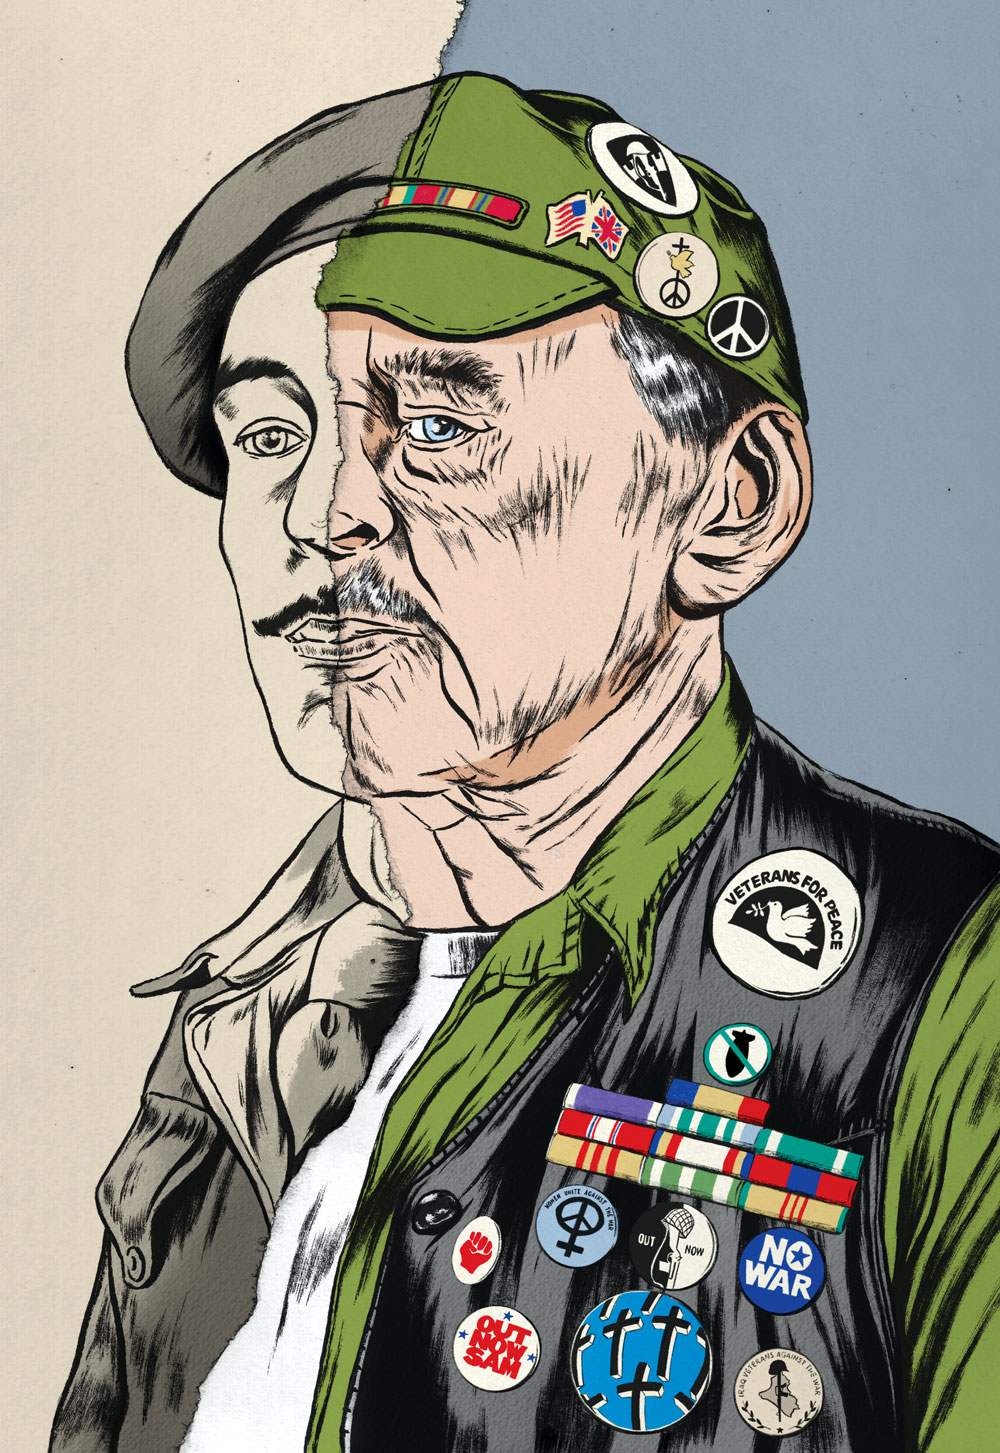 A portrait of a veteran is split in half: On the left, his younger self in a military uniform. On the right, he has transformed into an older man in anti-war regalia.